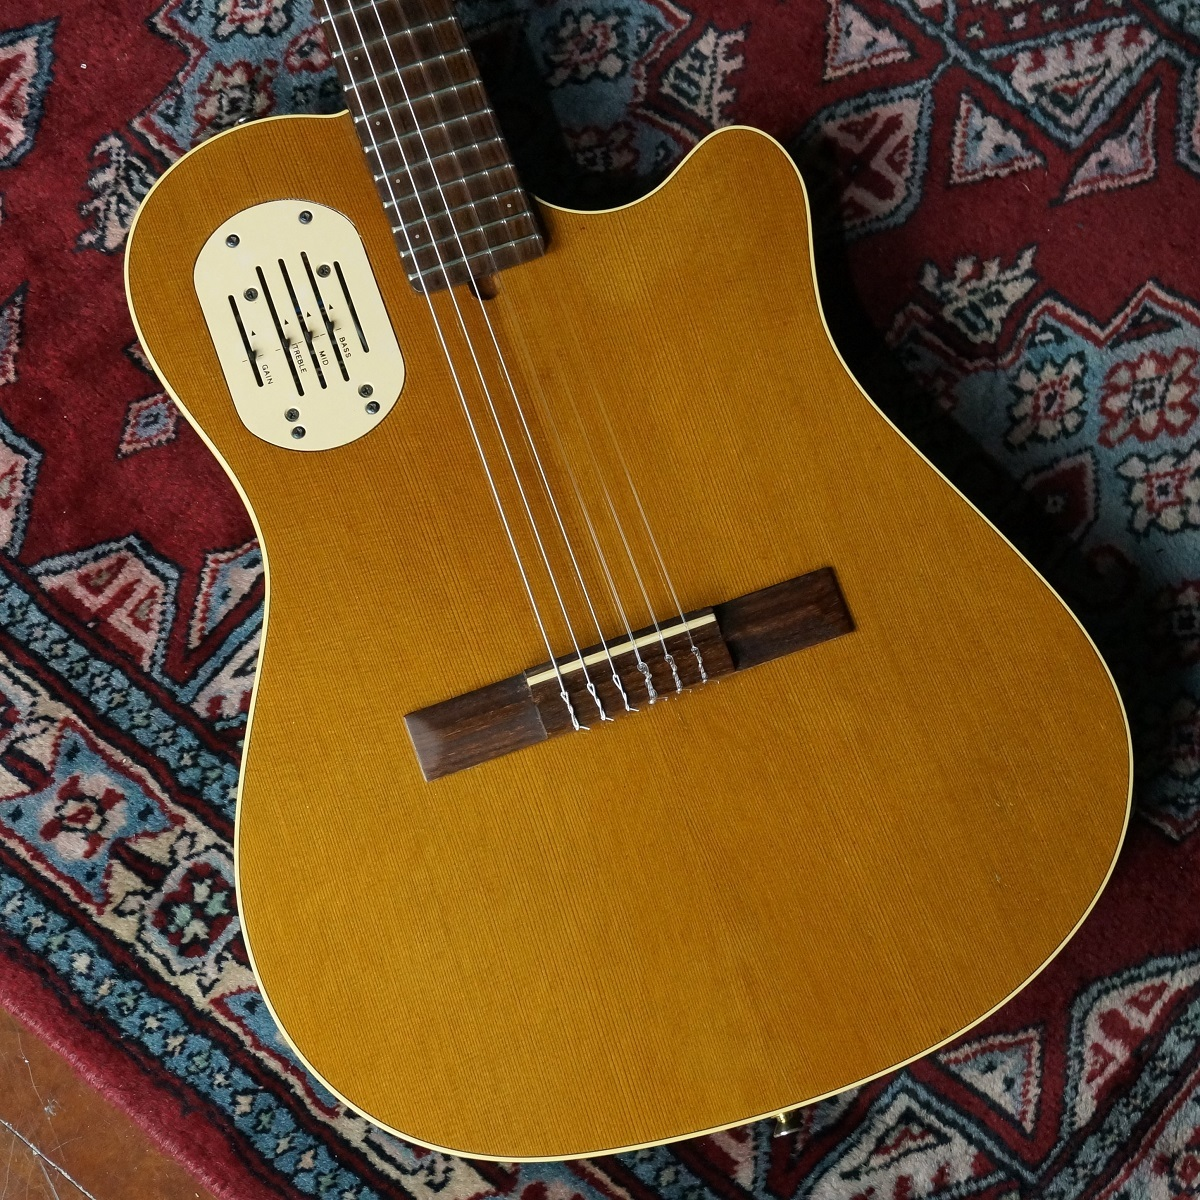 Godin Tele [cute looks !! that Quirky is a rare early Godin !! current model] Classic used